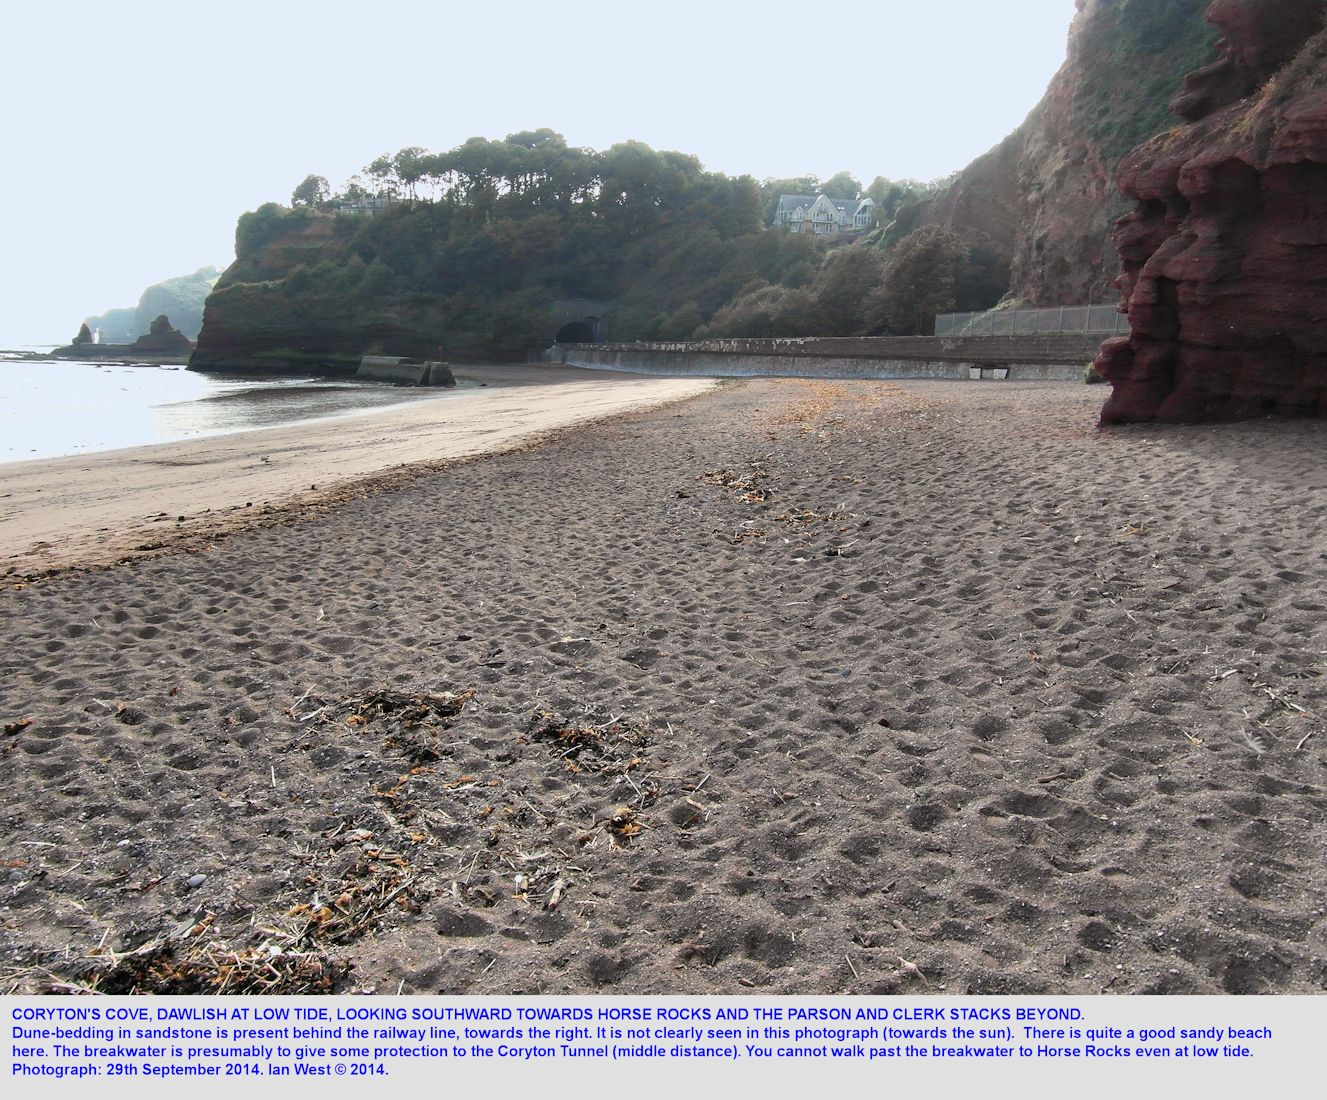 Coryton's Cove, Dawlish, Devon, seen at low tide in 2014